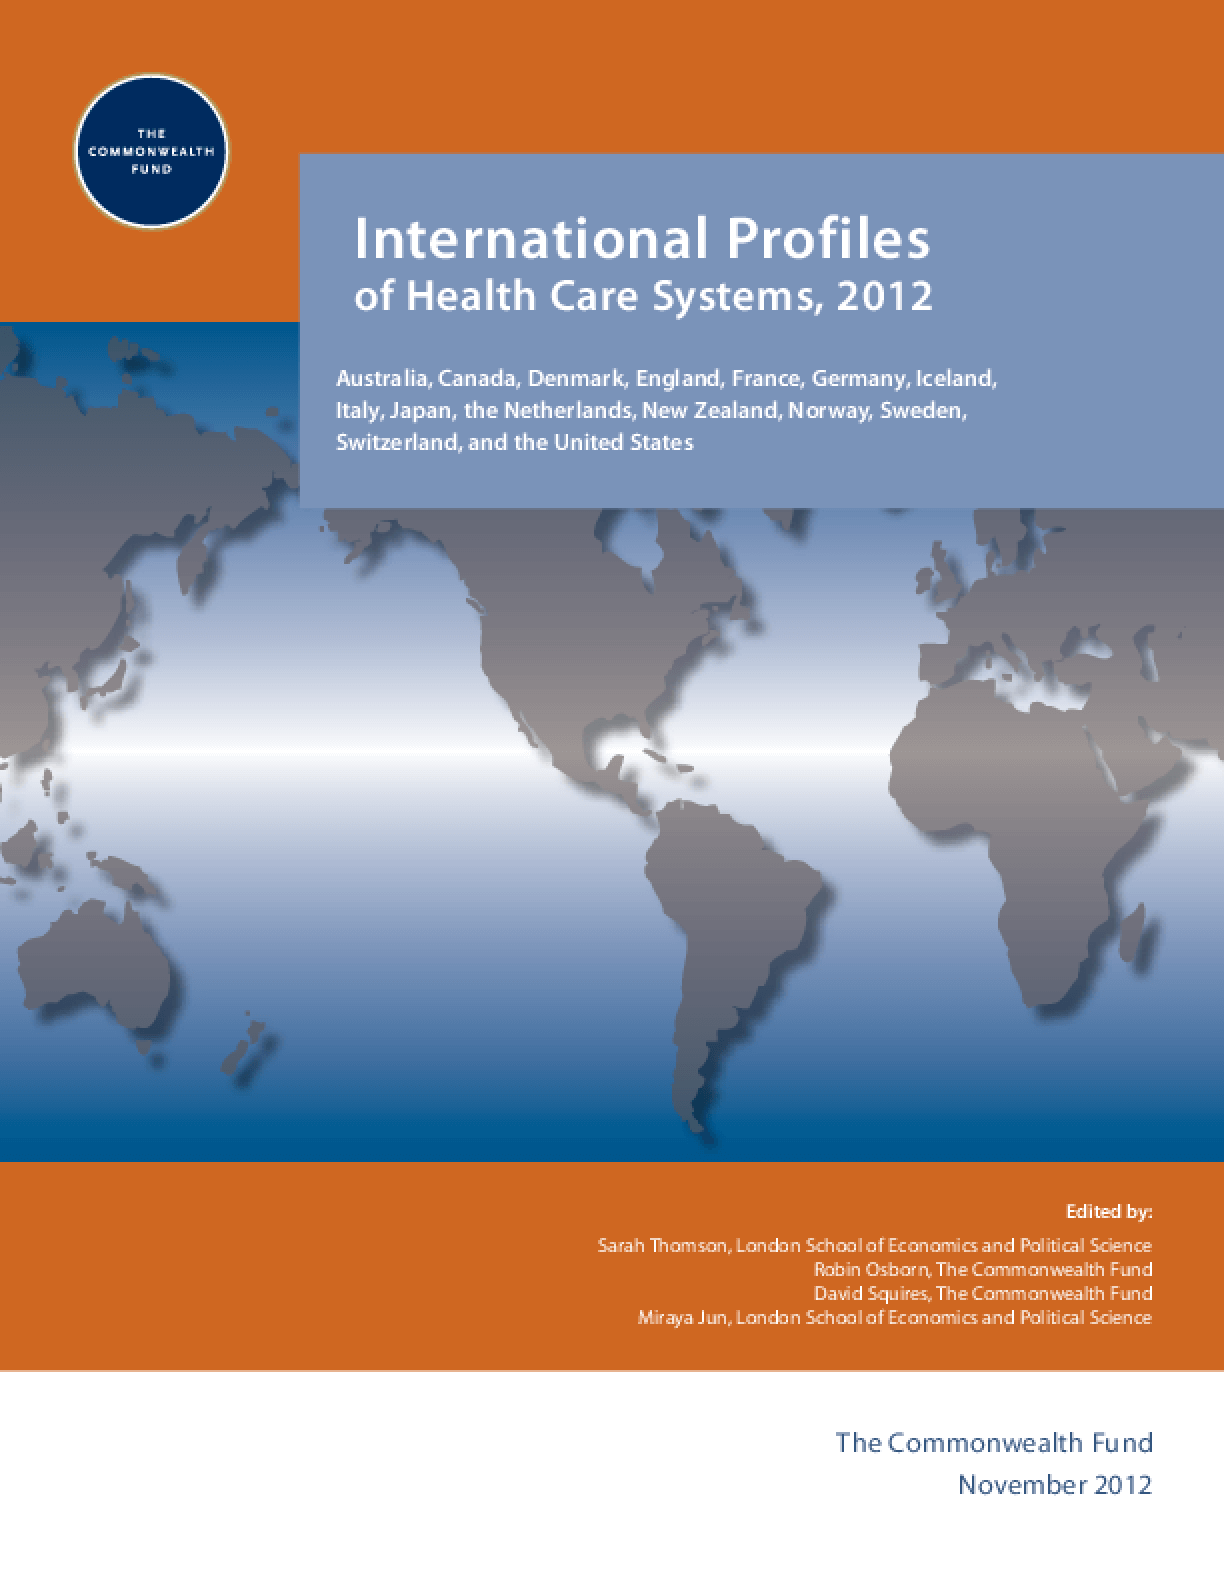 International Profiles of Health Care Systems, 2012